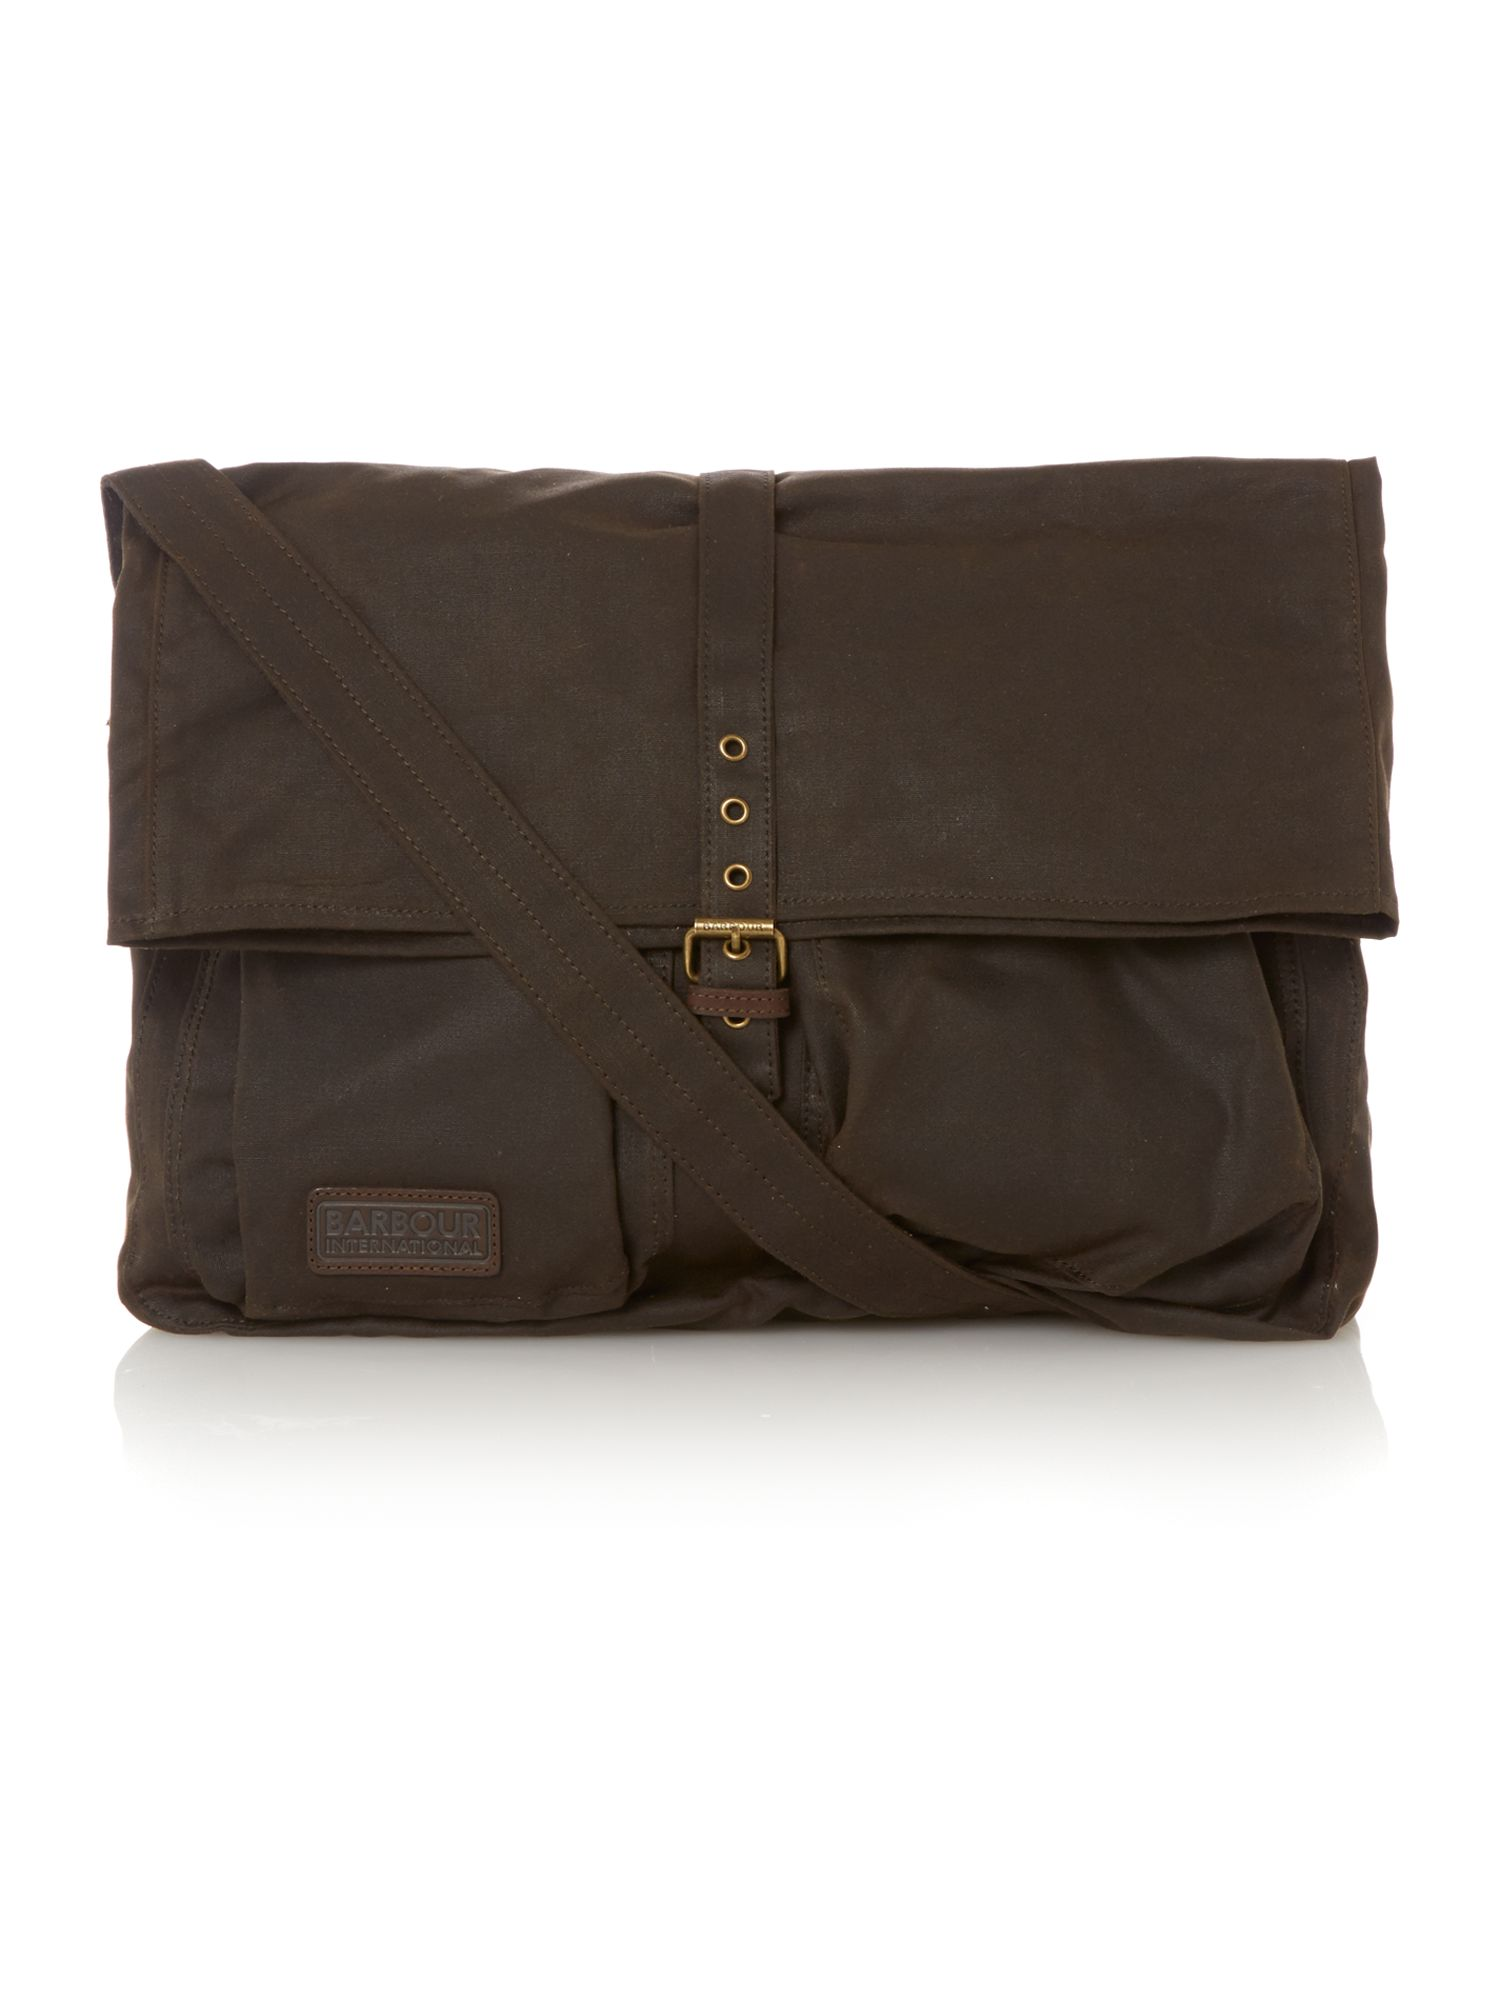 Stainton waxed messenger bag